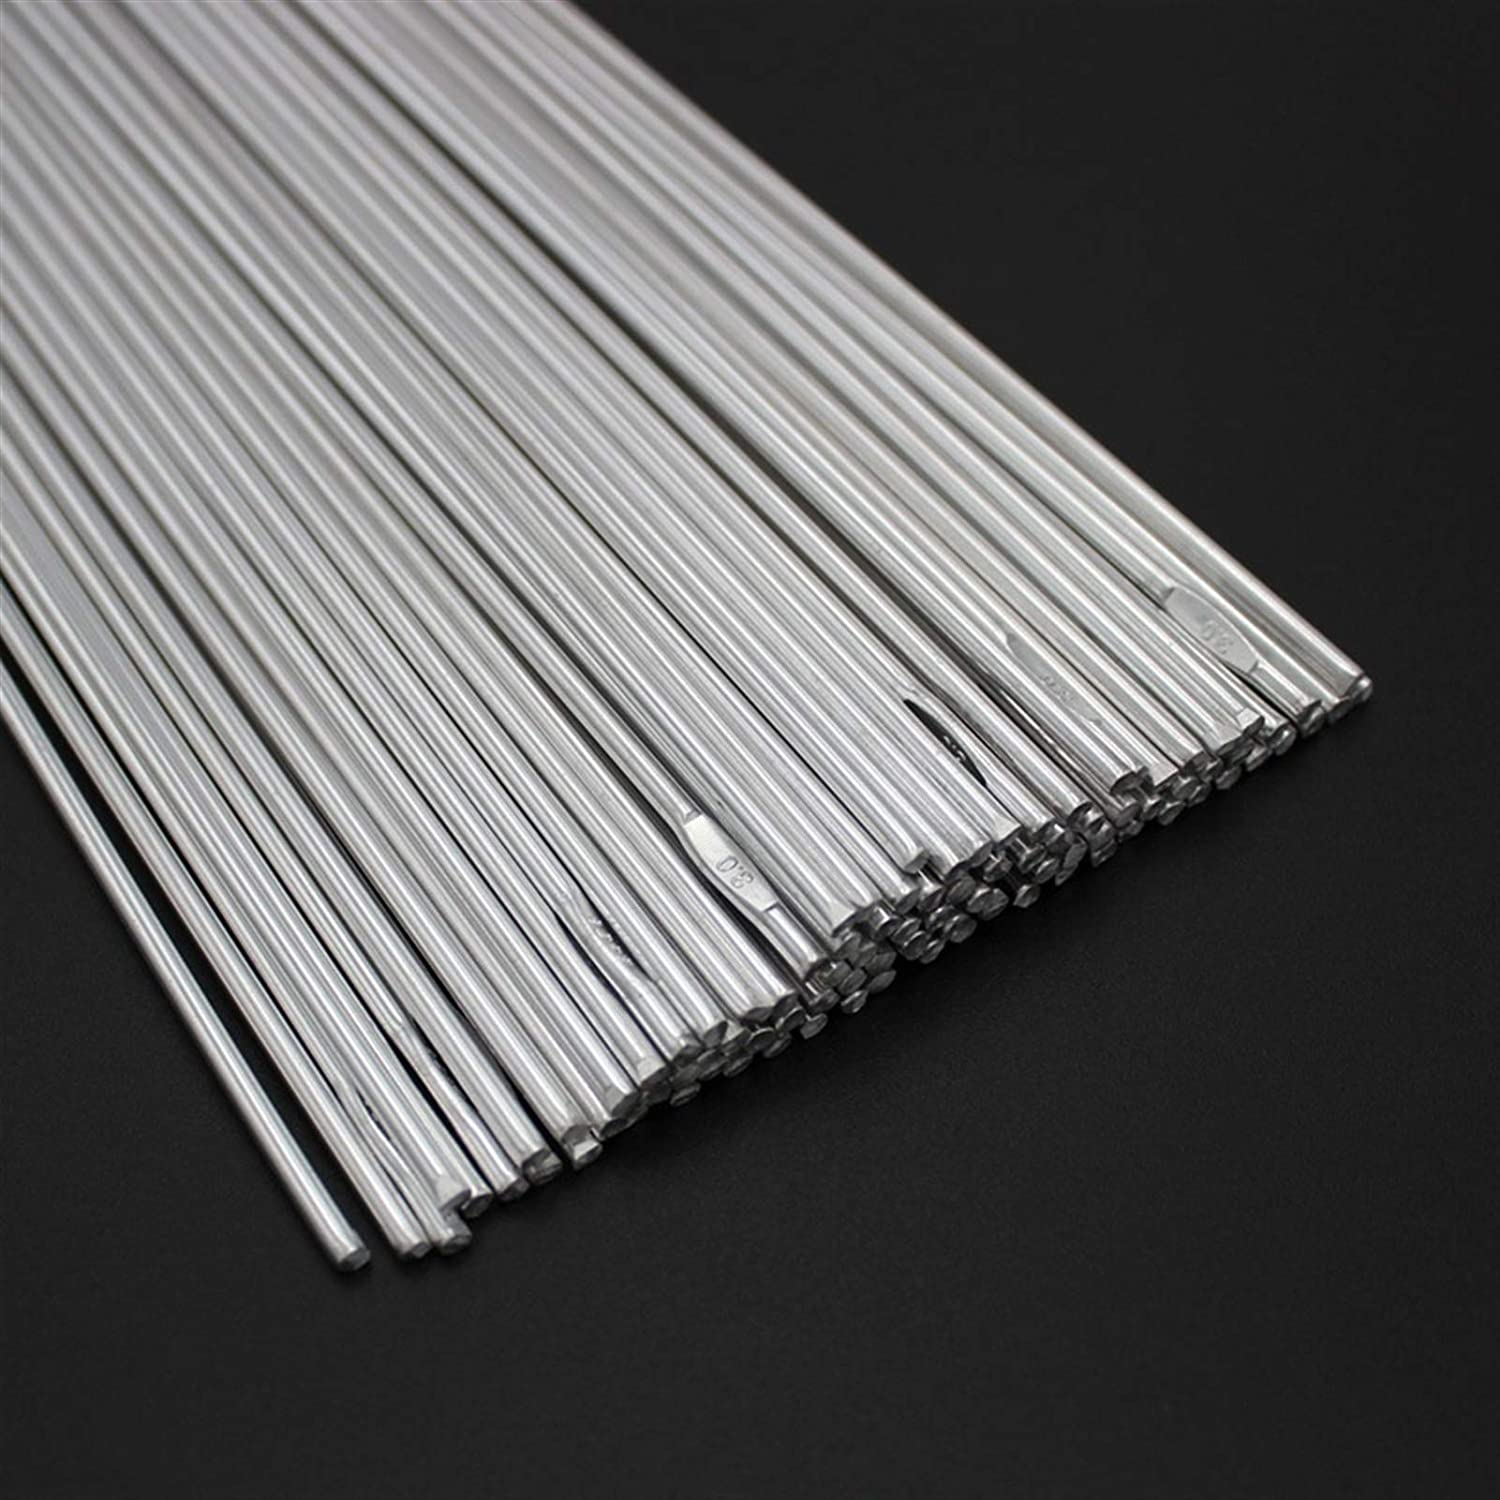 Chendawei Sxiaoxia-Welding Rods Manufacturer regenerated product Selling TIG ER535 Welding Aluminum